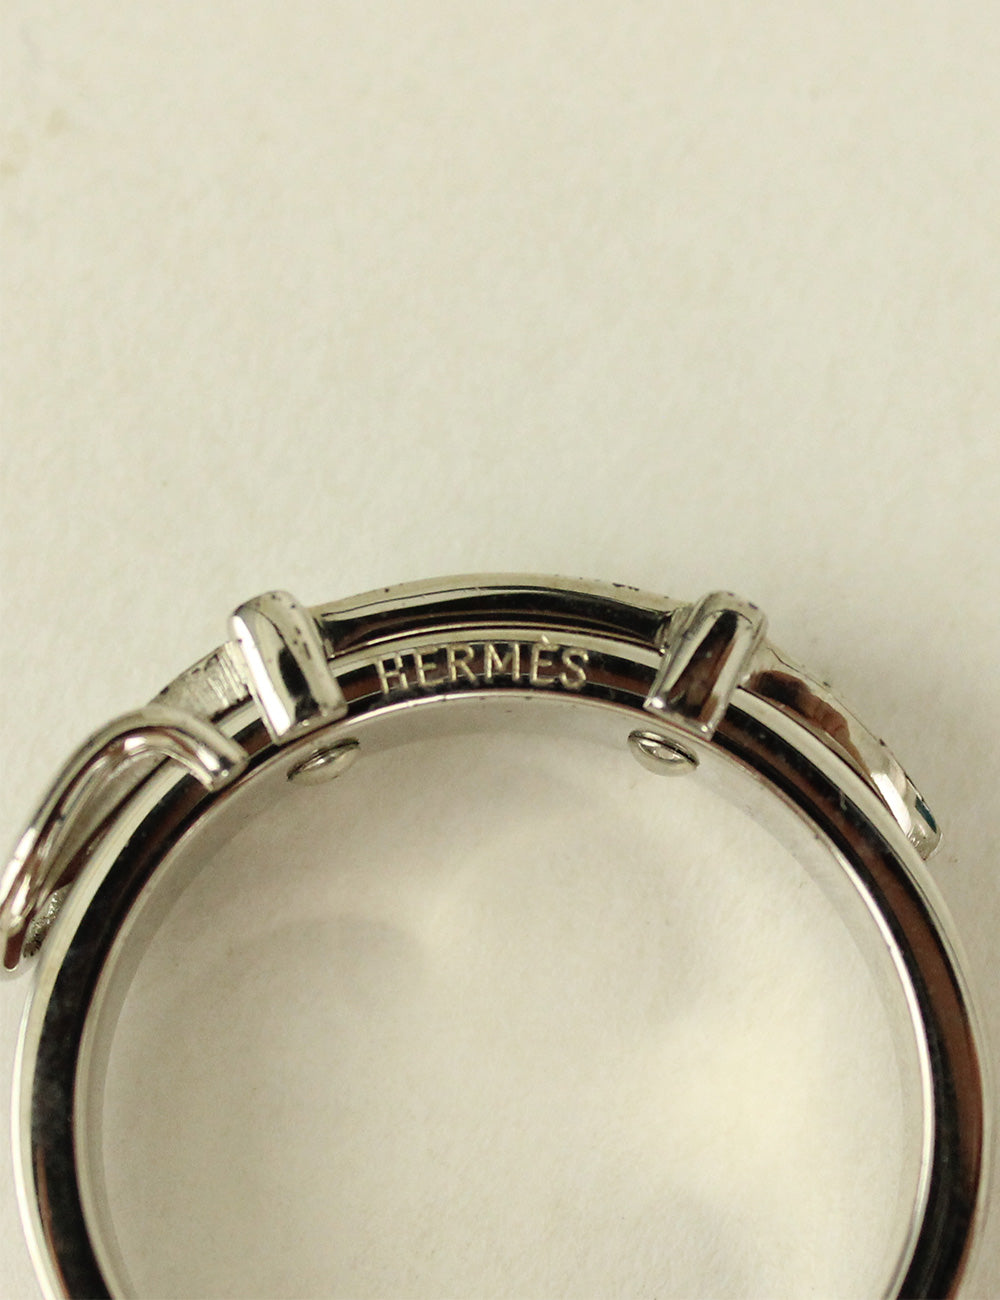 Hermes <br> Belt Buckle Motif Scarf Ring